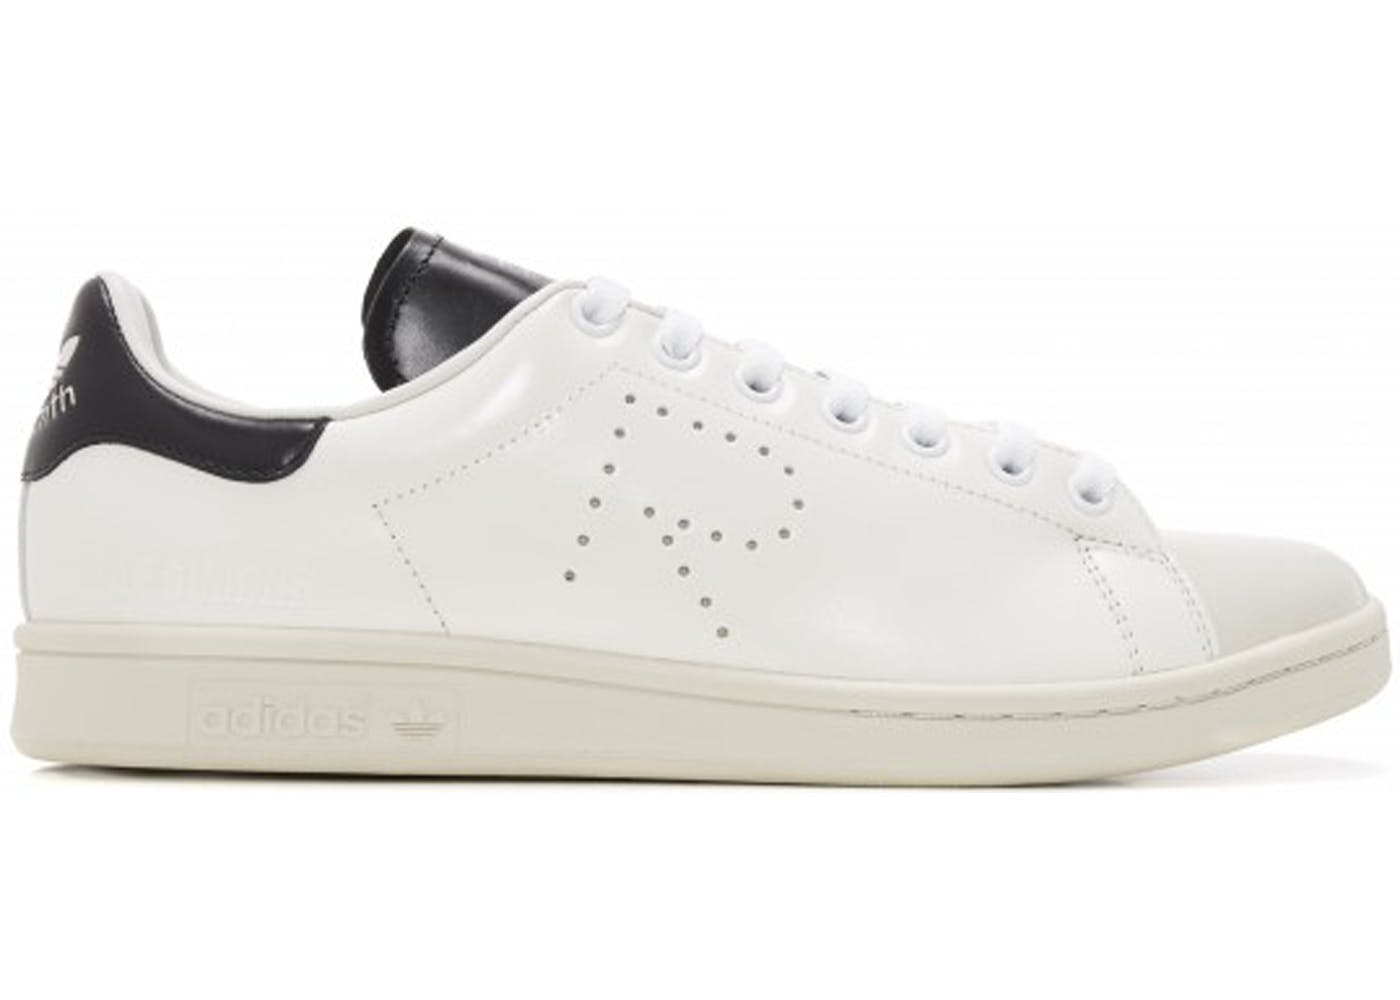 adidas stan smith raf simons white black. Black Bedroom Furniture Sets. Home Design Ideas